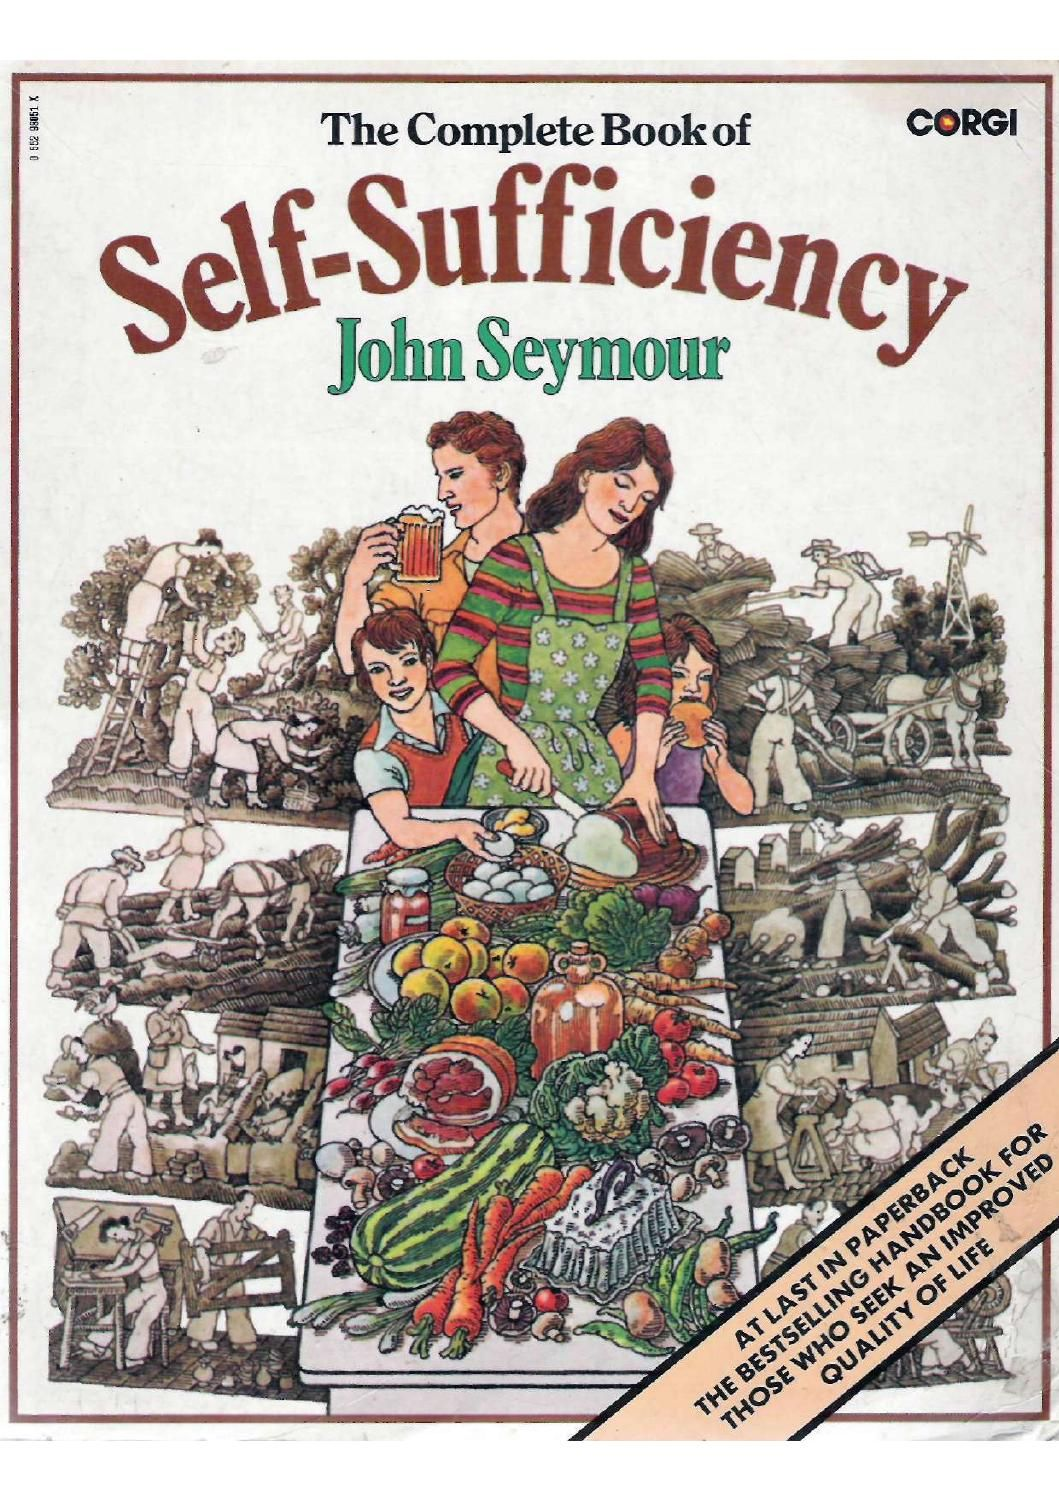 28b00df728045cf79165cce0f94e8b30 - The New Self Sufficient Gardener John Seymour